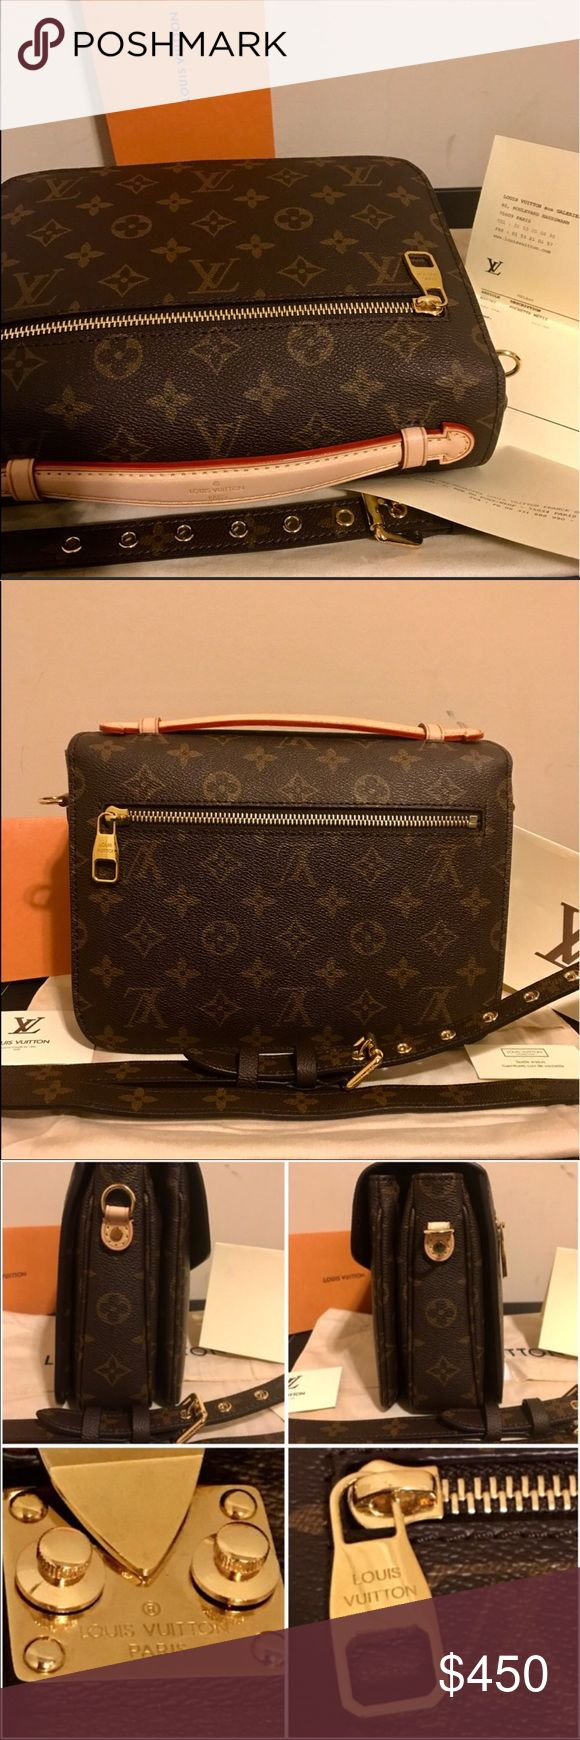 Pochette Metis Date Code: FL3175 Made in France. Photos are of the actual item you will receive. Item ships same day. Poshmark purchase preferred. Price is firm via Posh ($295 via Google wallet). Price reflects. Louis Vuitton Bags Crossbody Bags